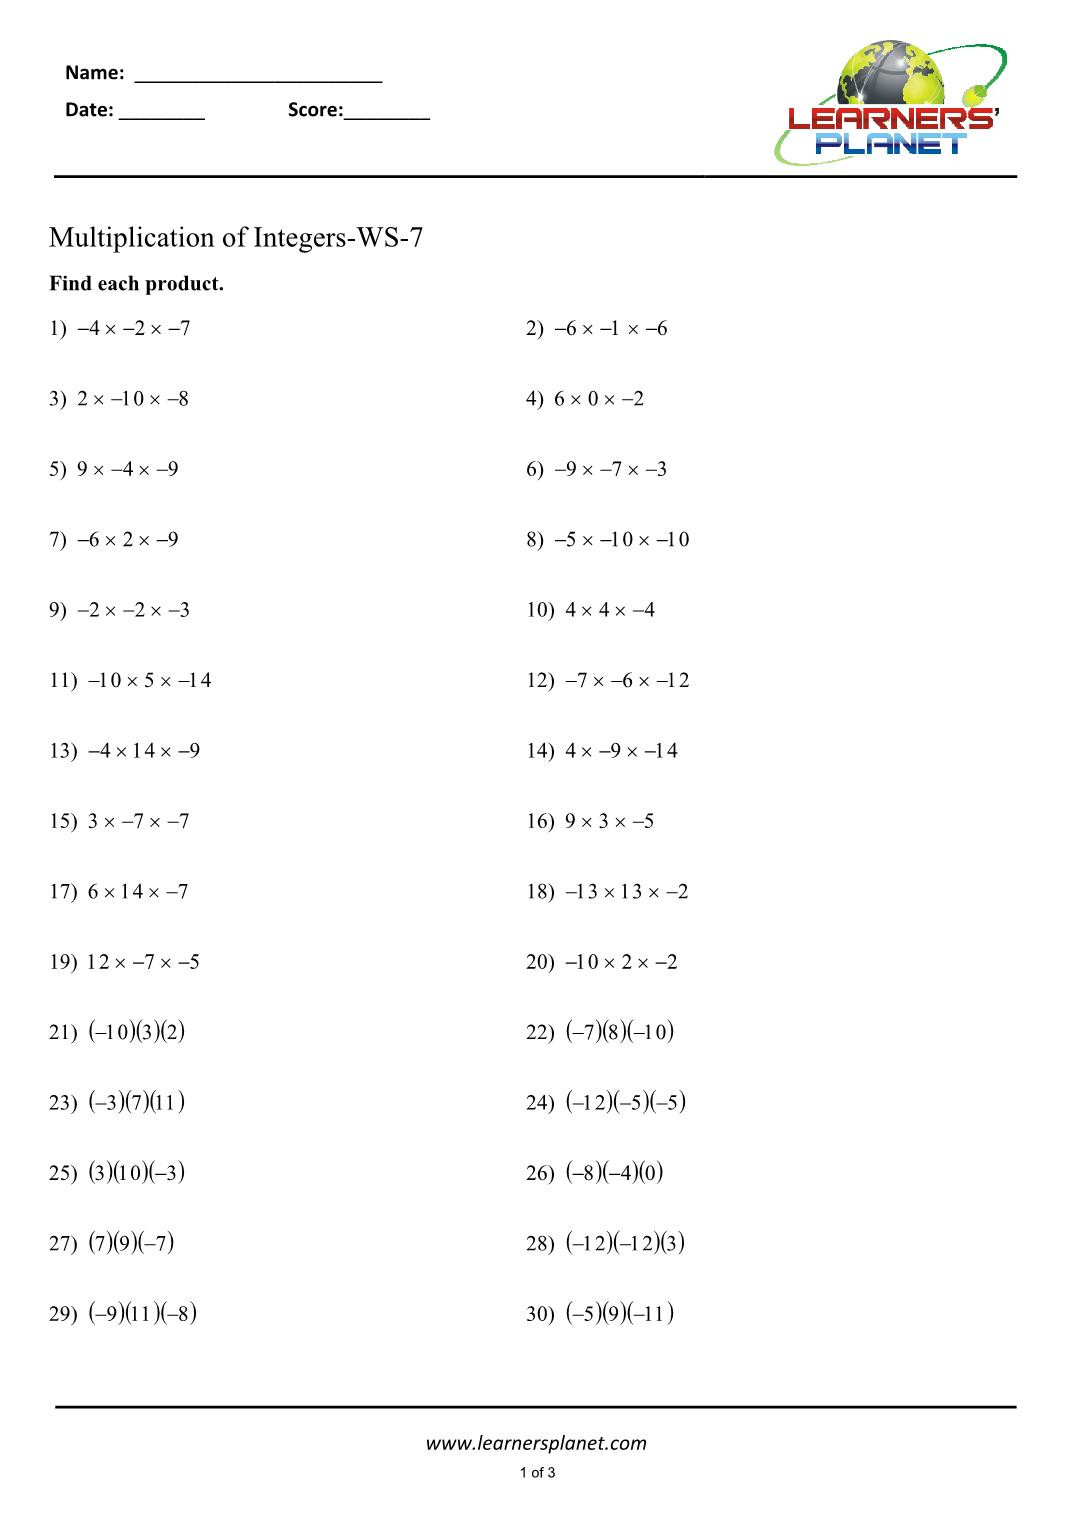 Multiplying Integers Worksheet 7th Grade Basic Mathmatics Prince and Princess Coloring Pages 7th